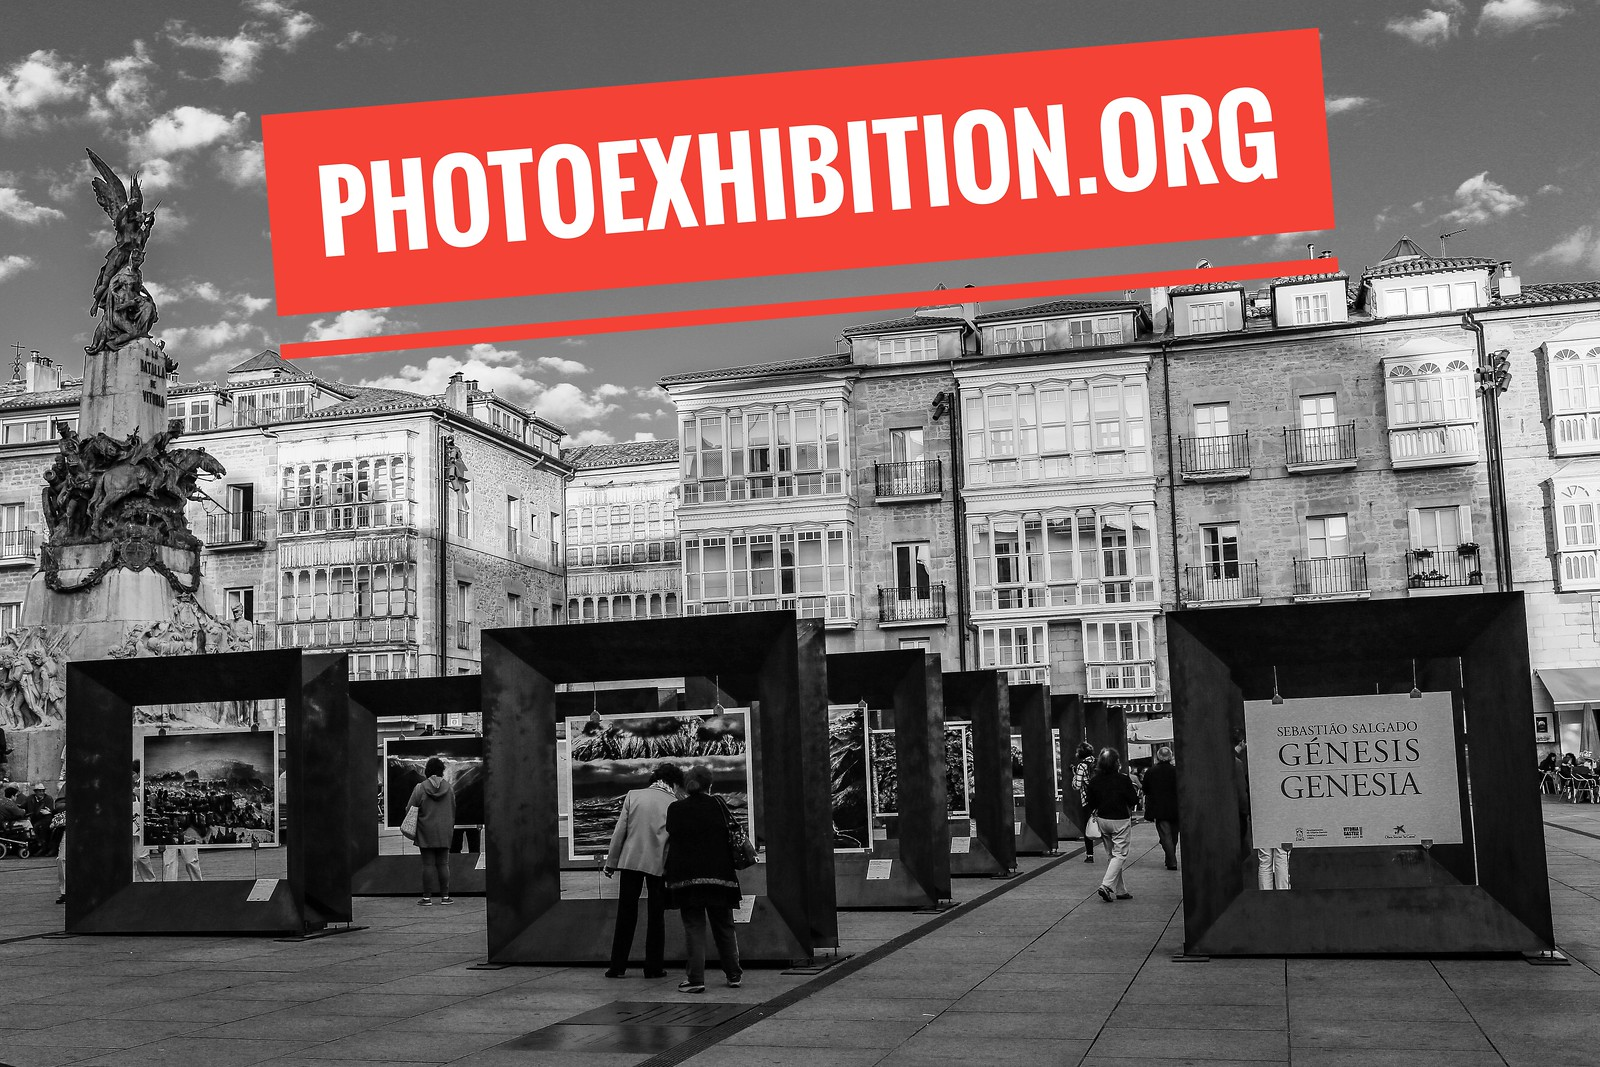 PhotoExhibition.org, domain name for sale